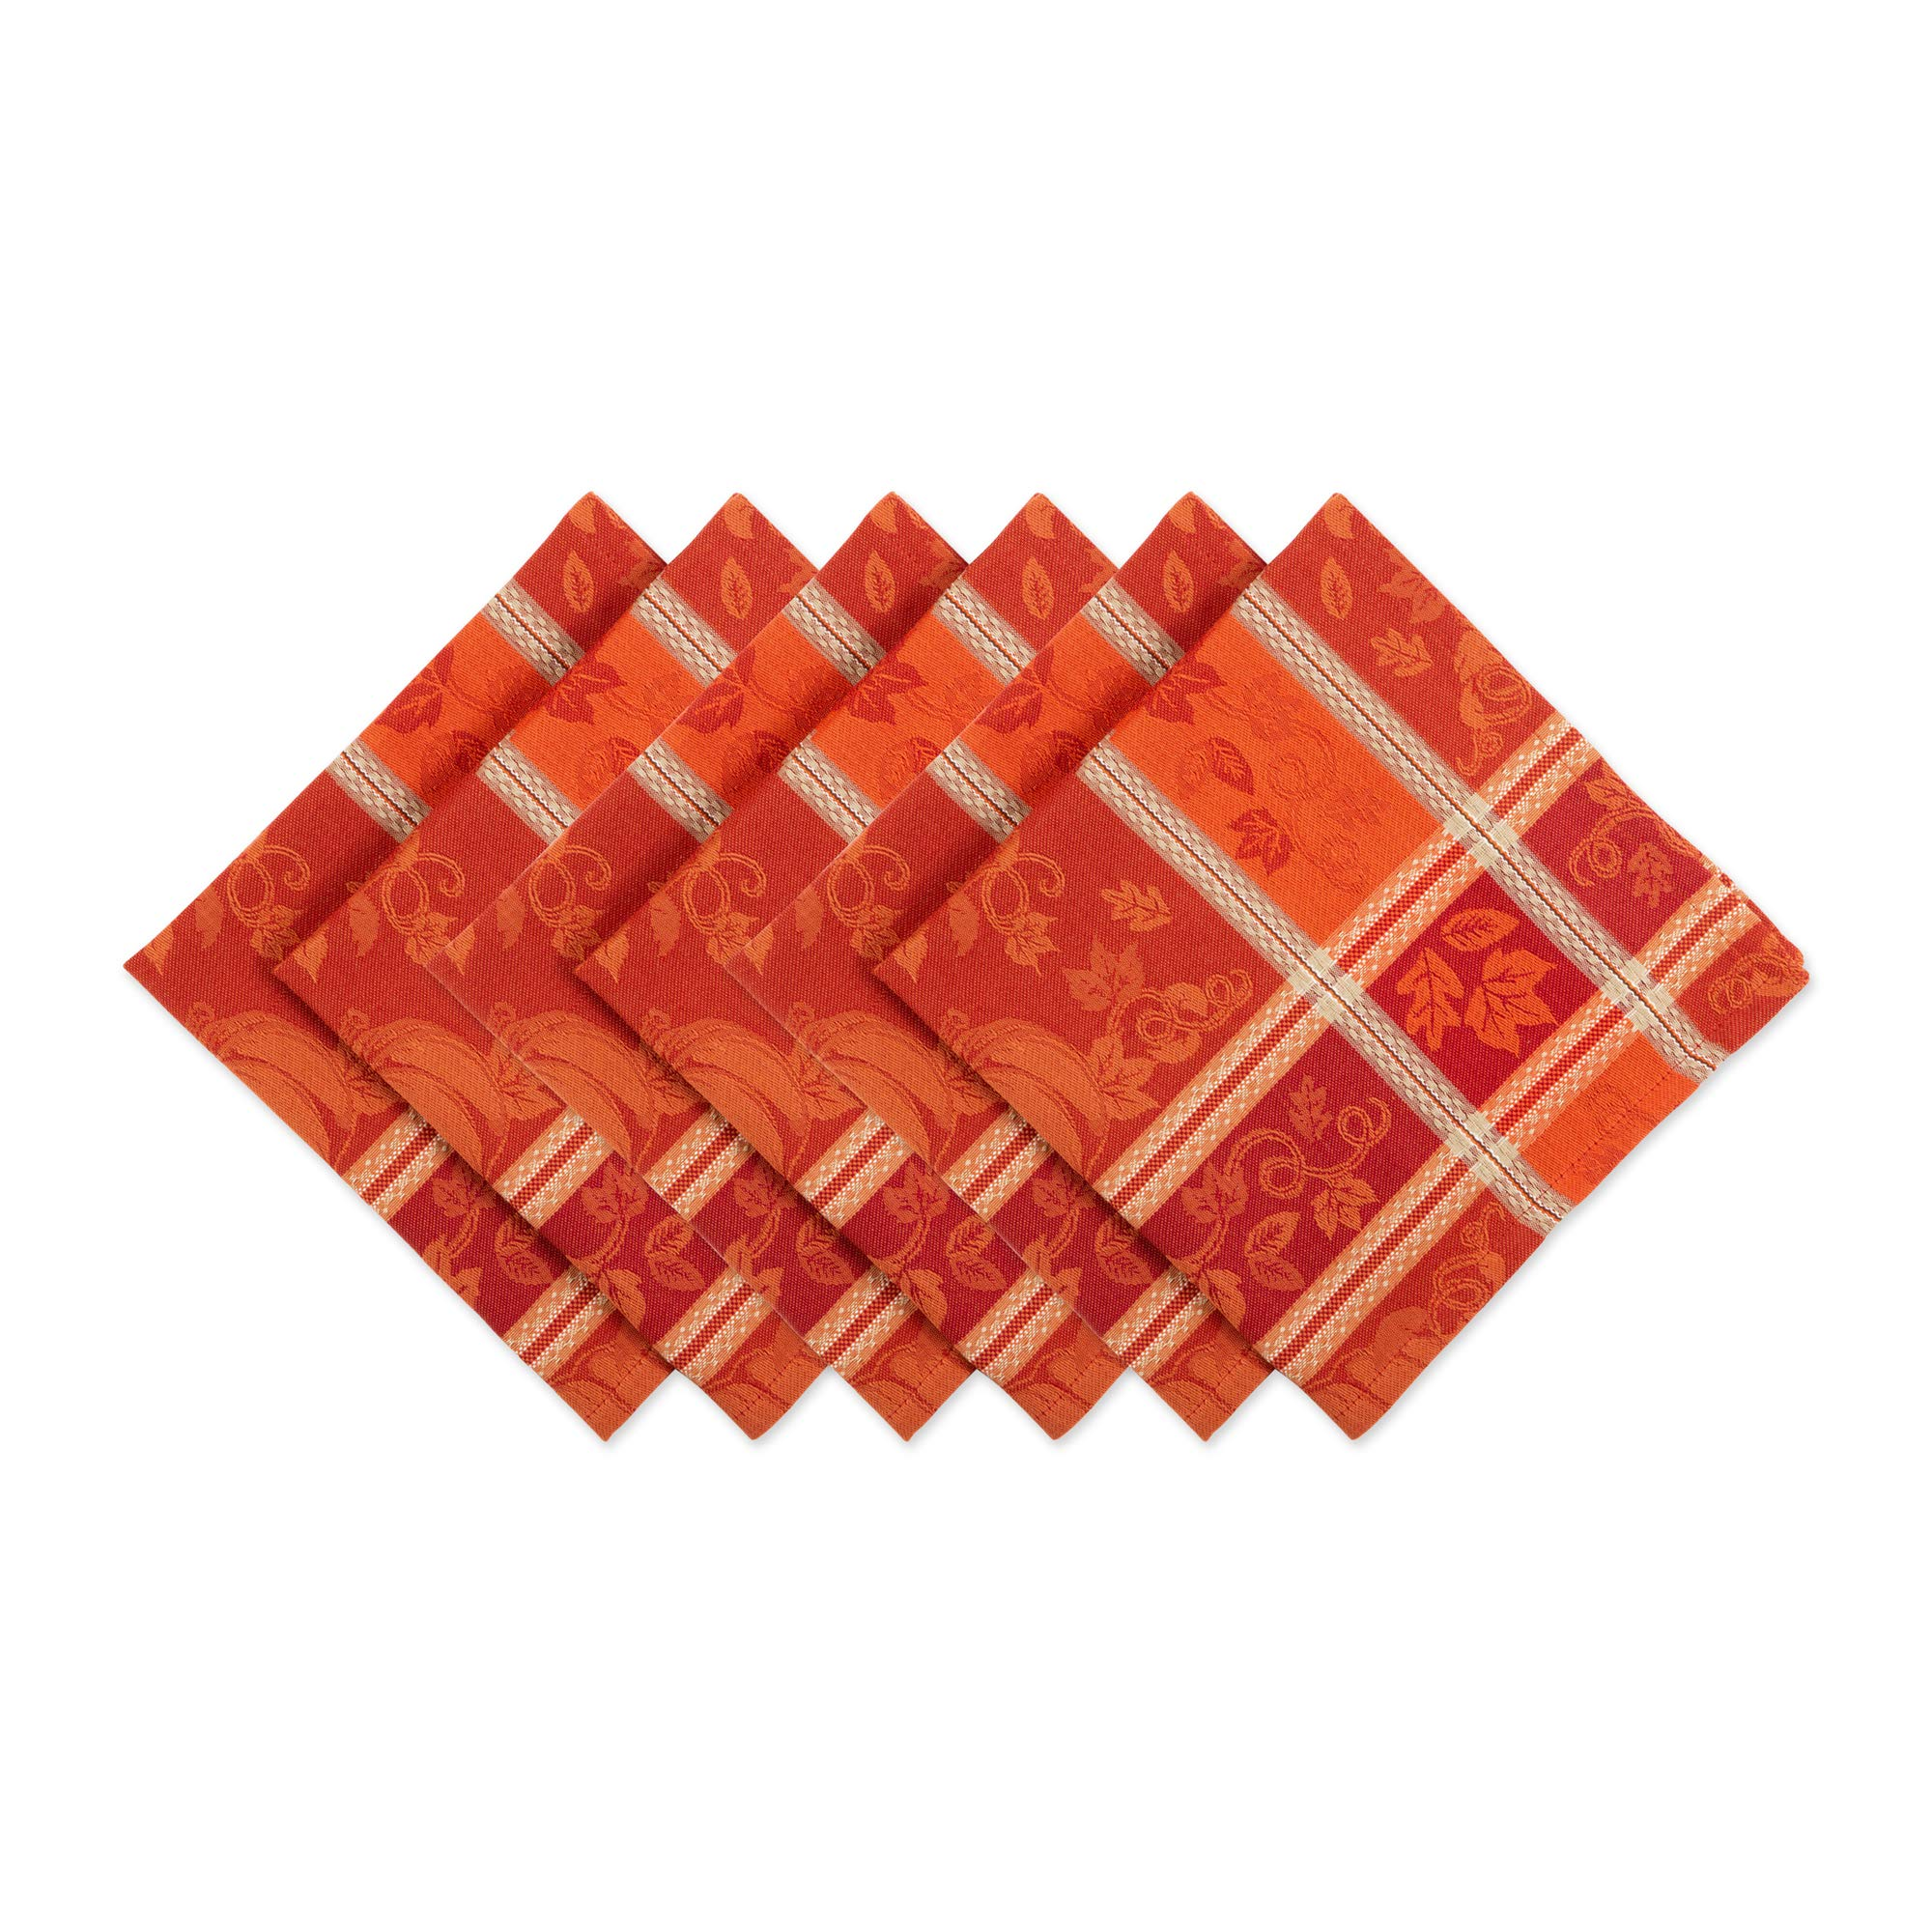 DII CAMZ11221 Oversized Cotton Napkins, Perfect for Dinner Parties, Christmas, Holidays, or Everyday Use, S/6, Pumpkin Vine by DII